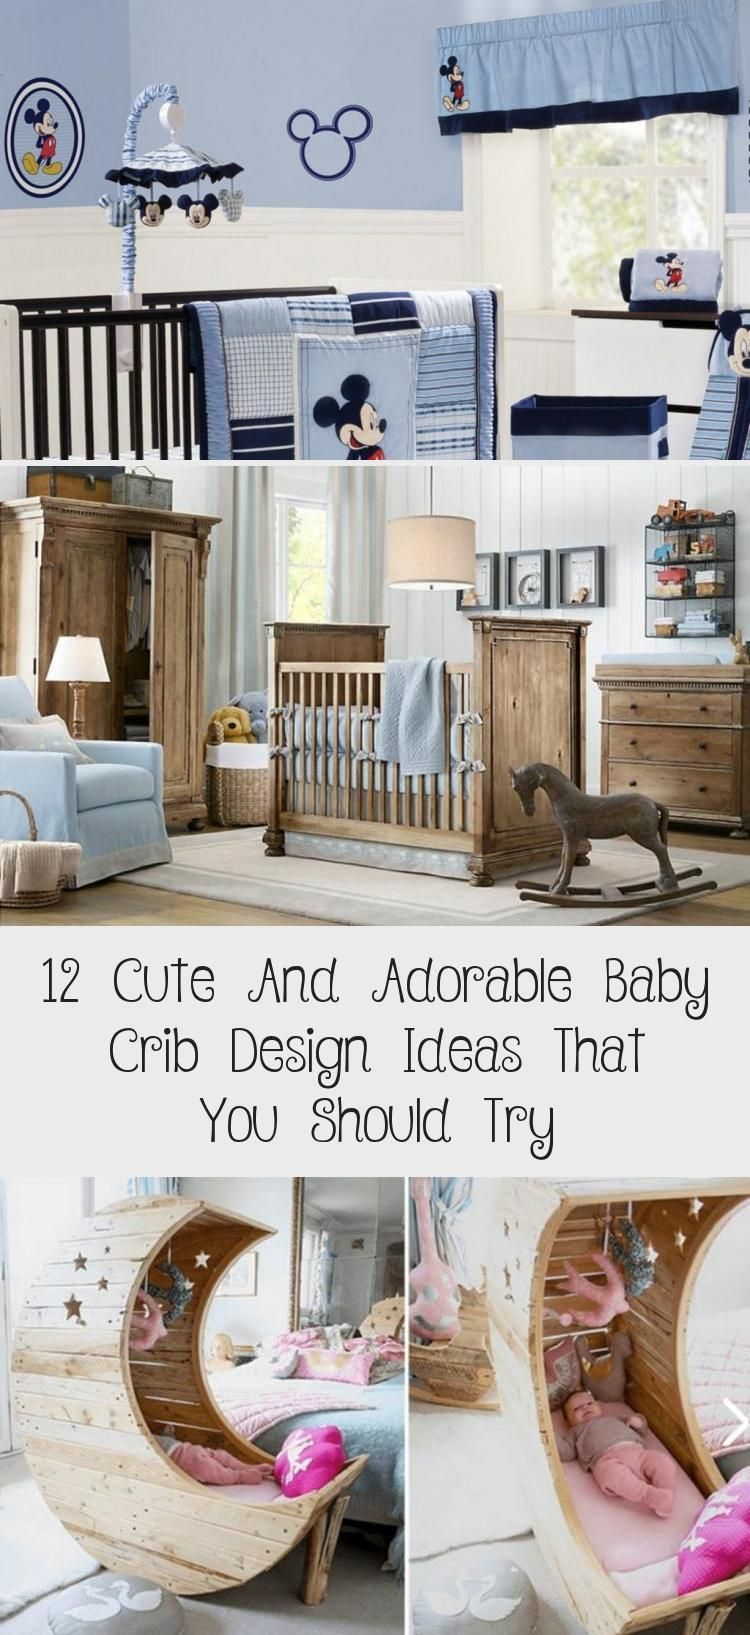 12 Cute And Adorable Baby Crib Design Ideas That You Should Try Babypflege Und Baby